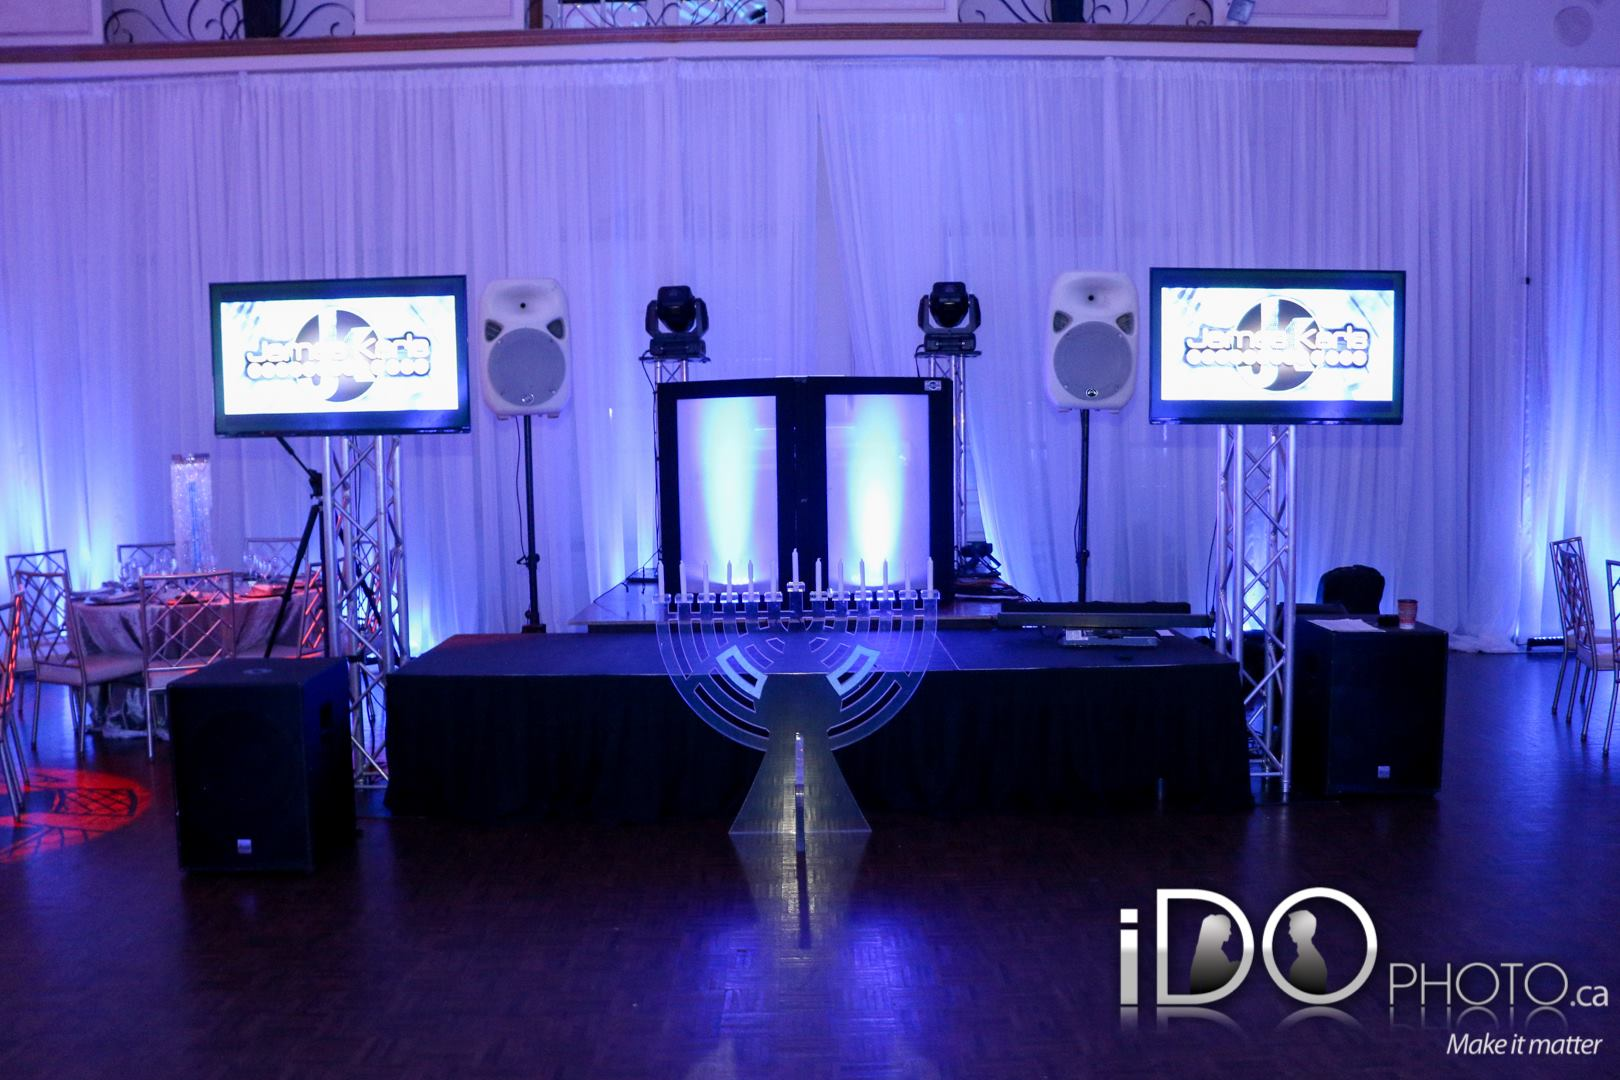 Booth - Screens - Candelabra